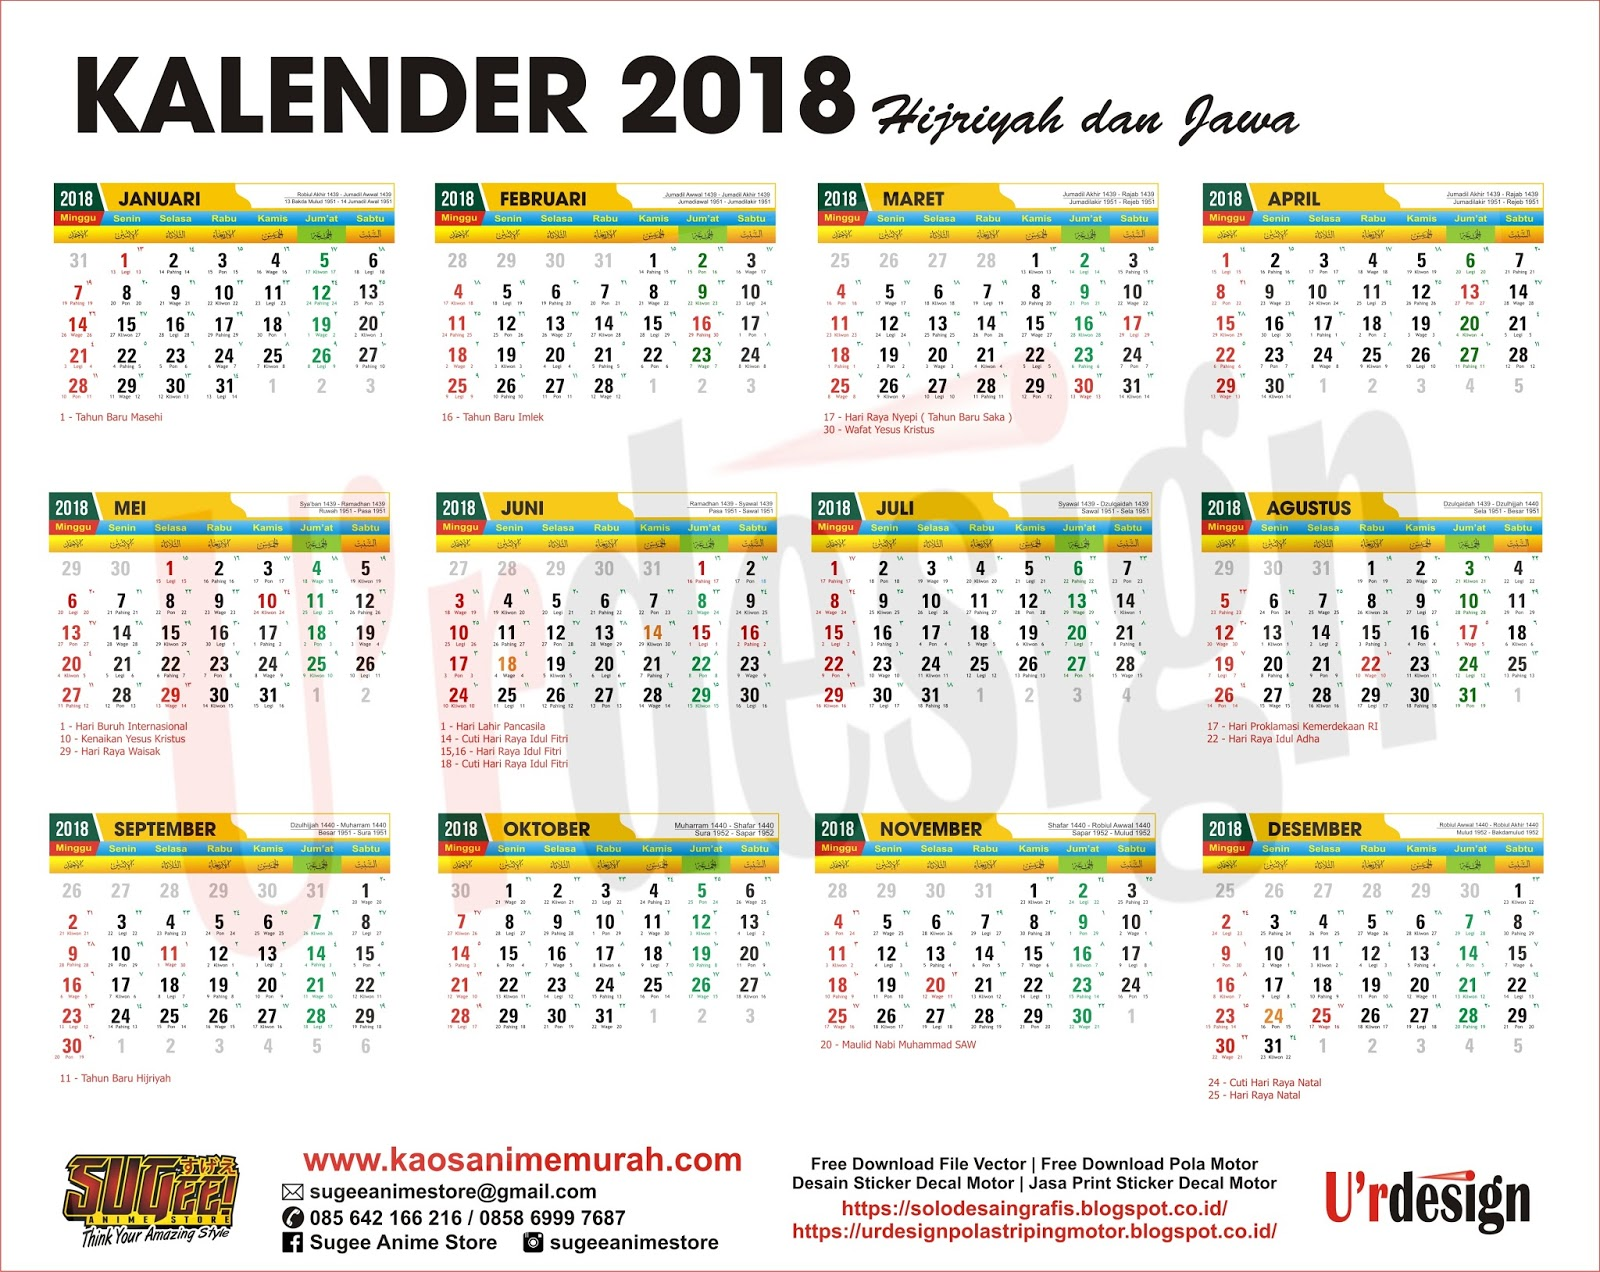 Kalender 2018 image collections invitation sample and for Kalender design